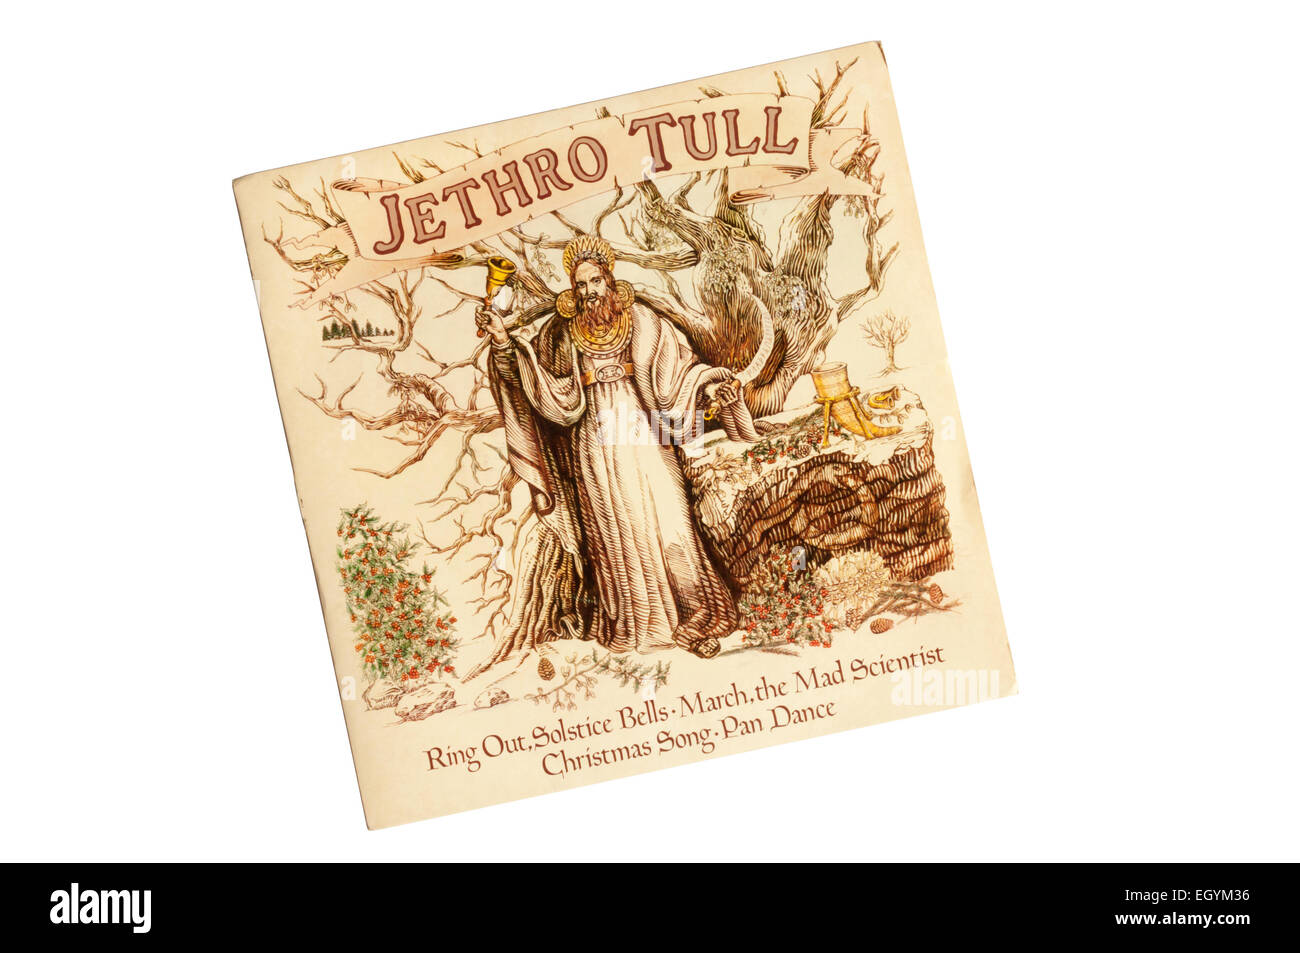 This four track EP by Jethro Tull was issued on the Chrysalis label ...